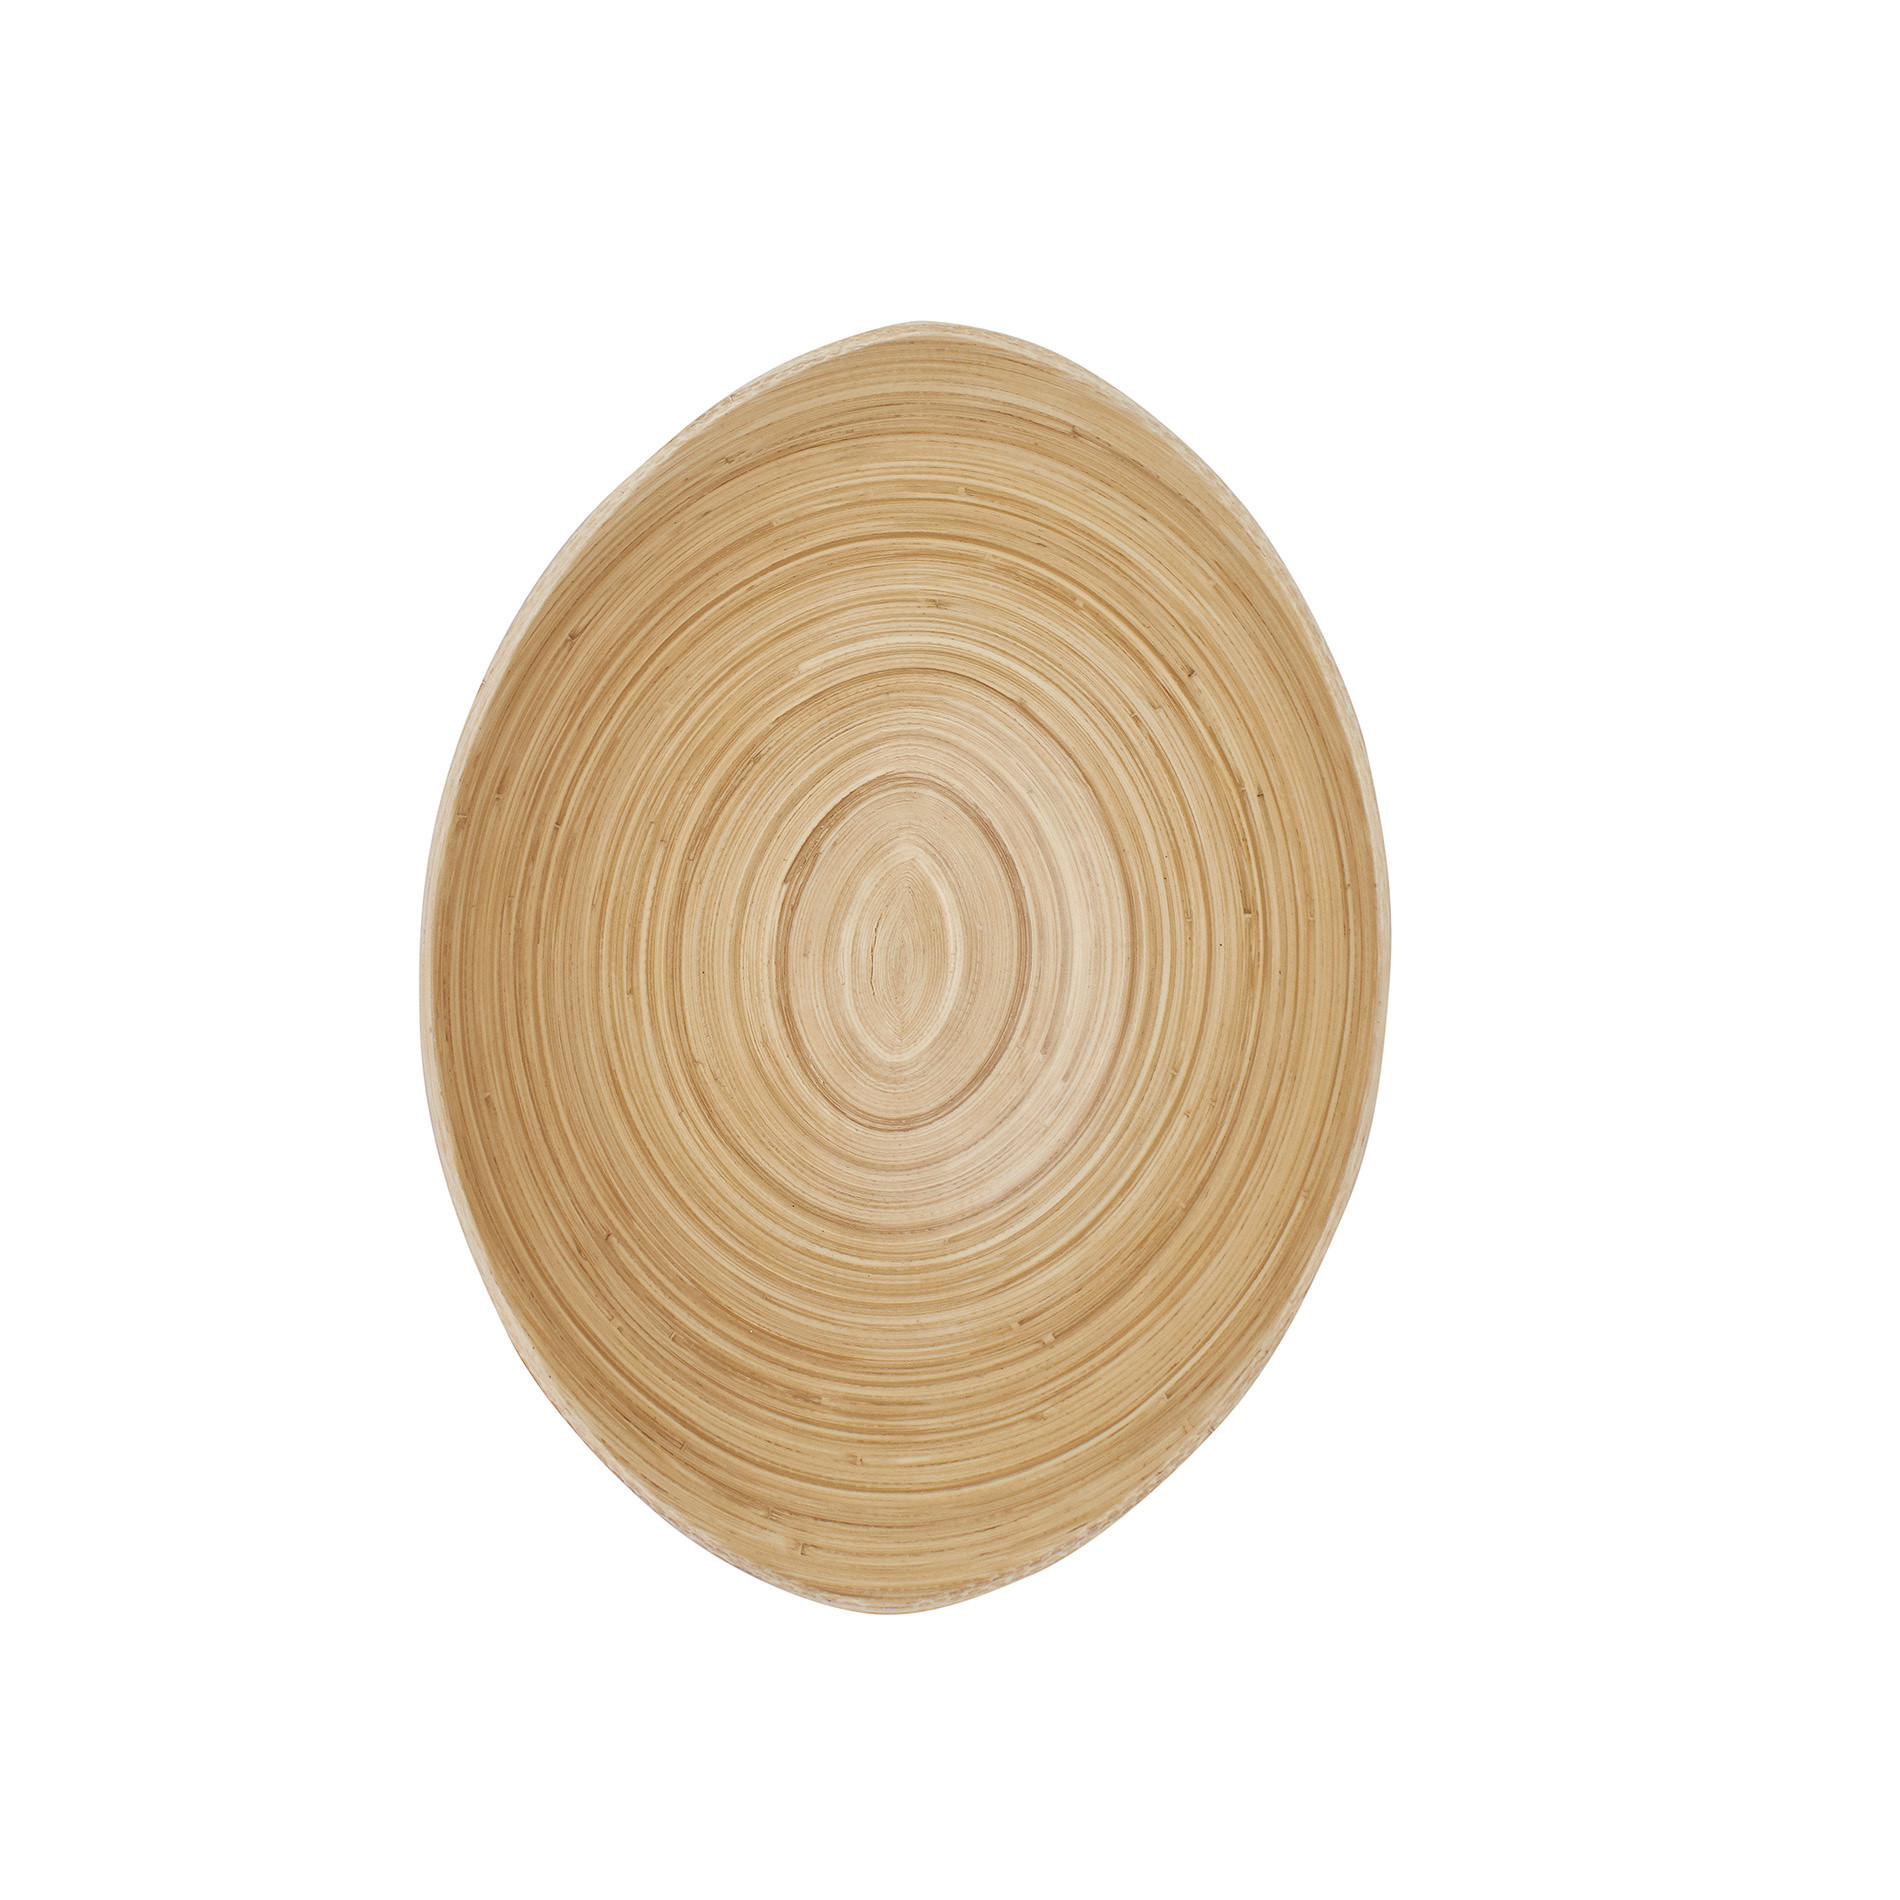 Coppa ovale bamboo, Naturale, large image number 1